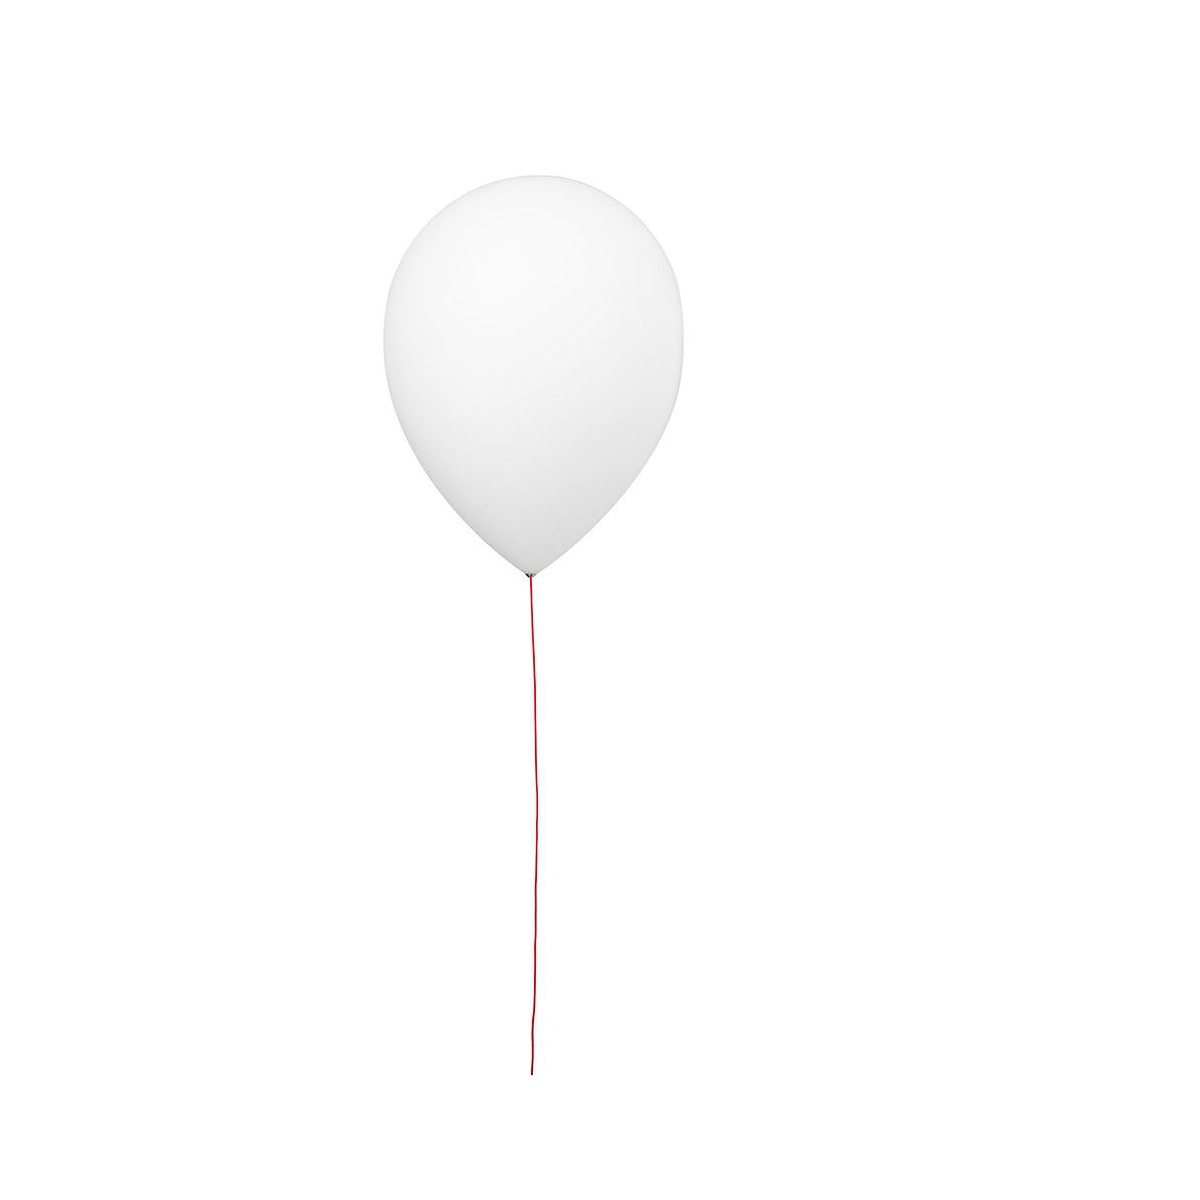 Balloon a 3050 Applique 26cm E27 20w bianco